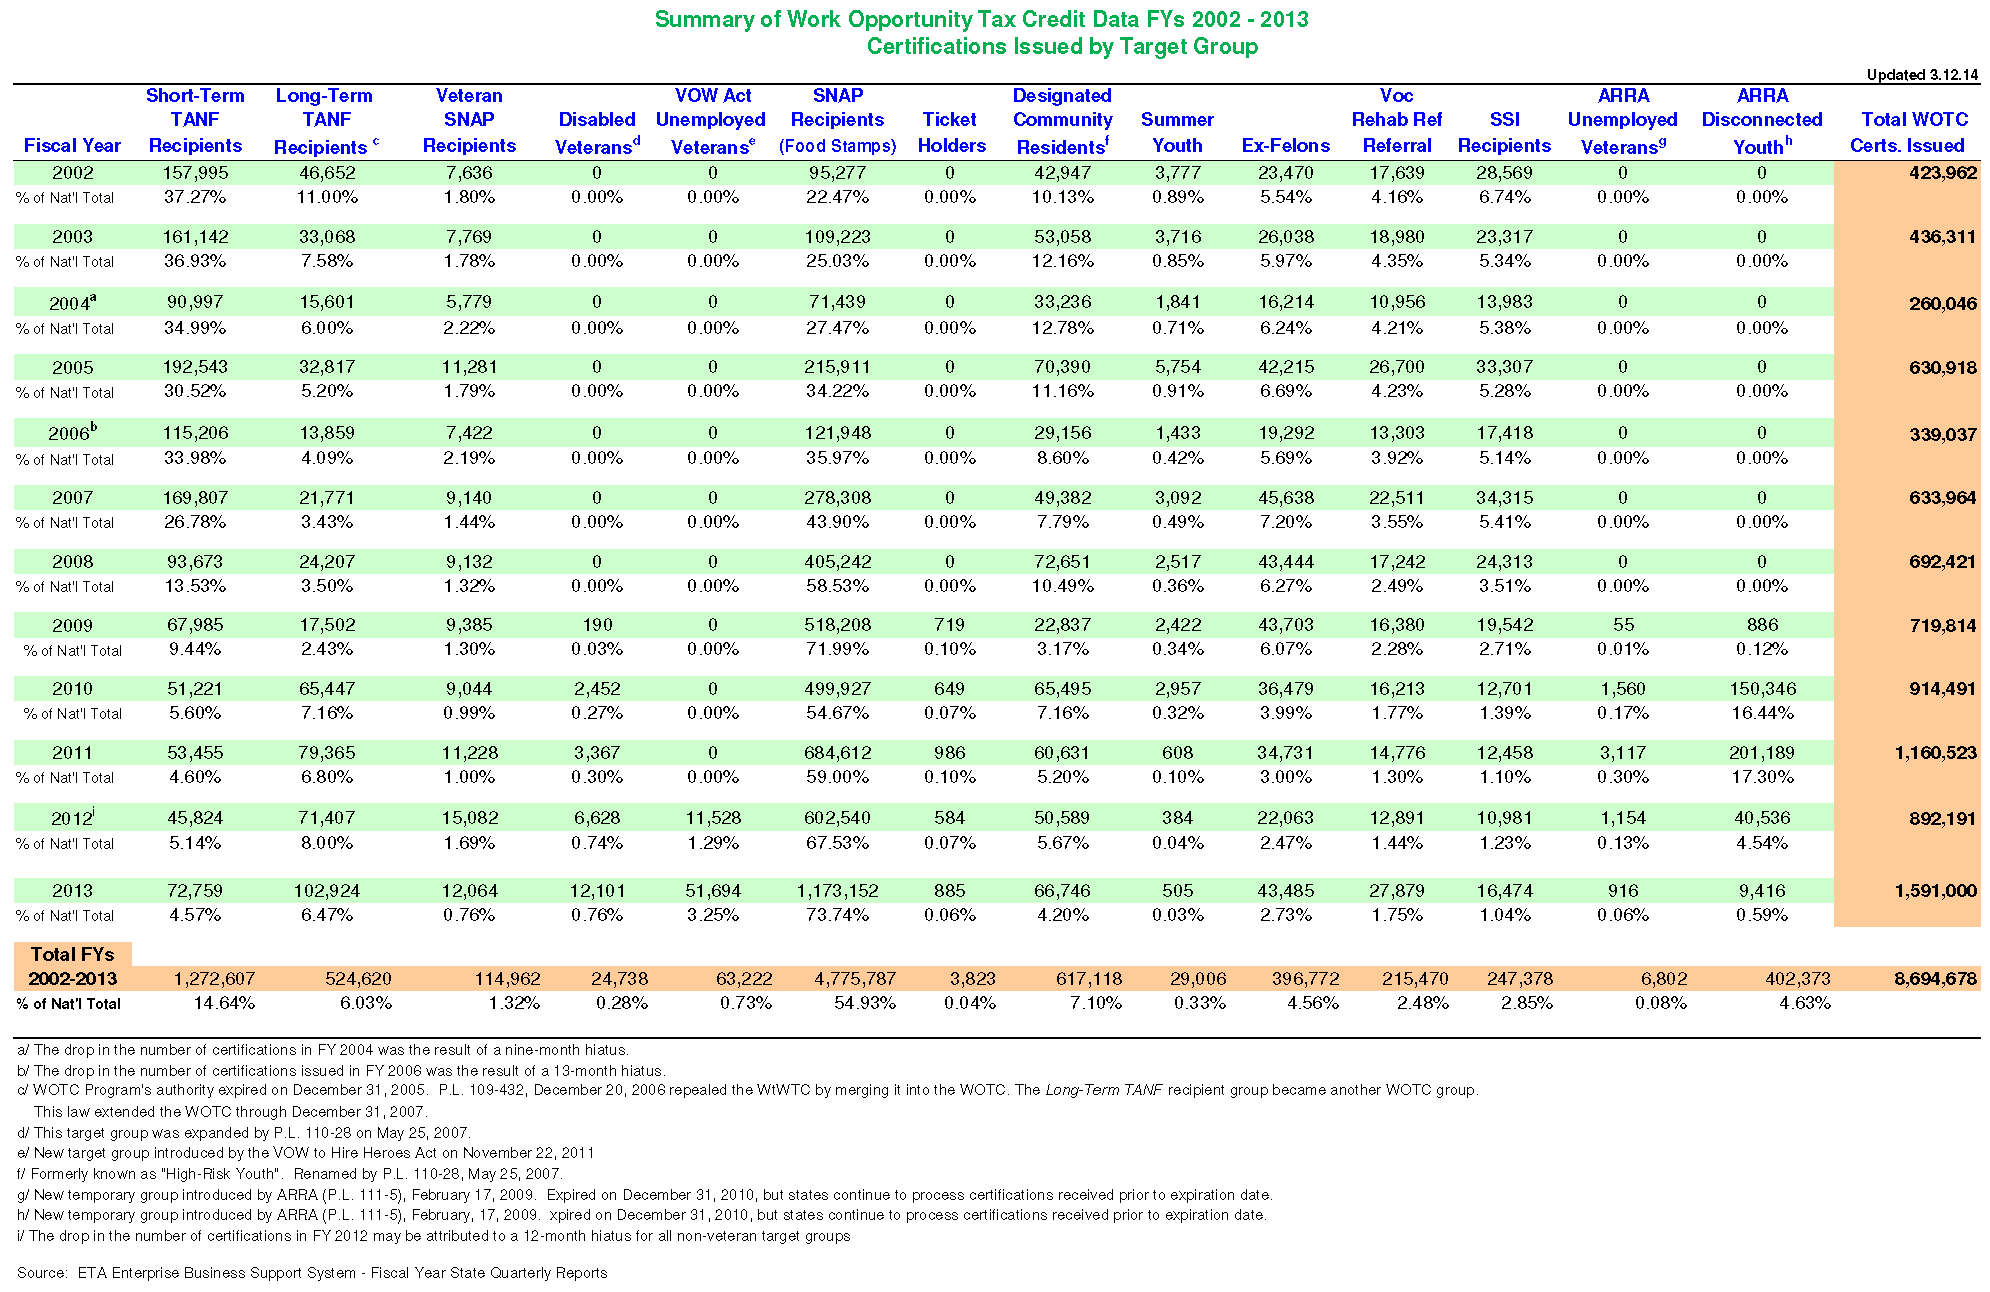 WOTC National Certifications By Target Group Fiscal Years 2002 - 2013 (Click for PDF)